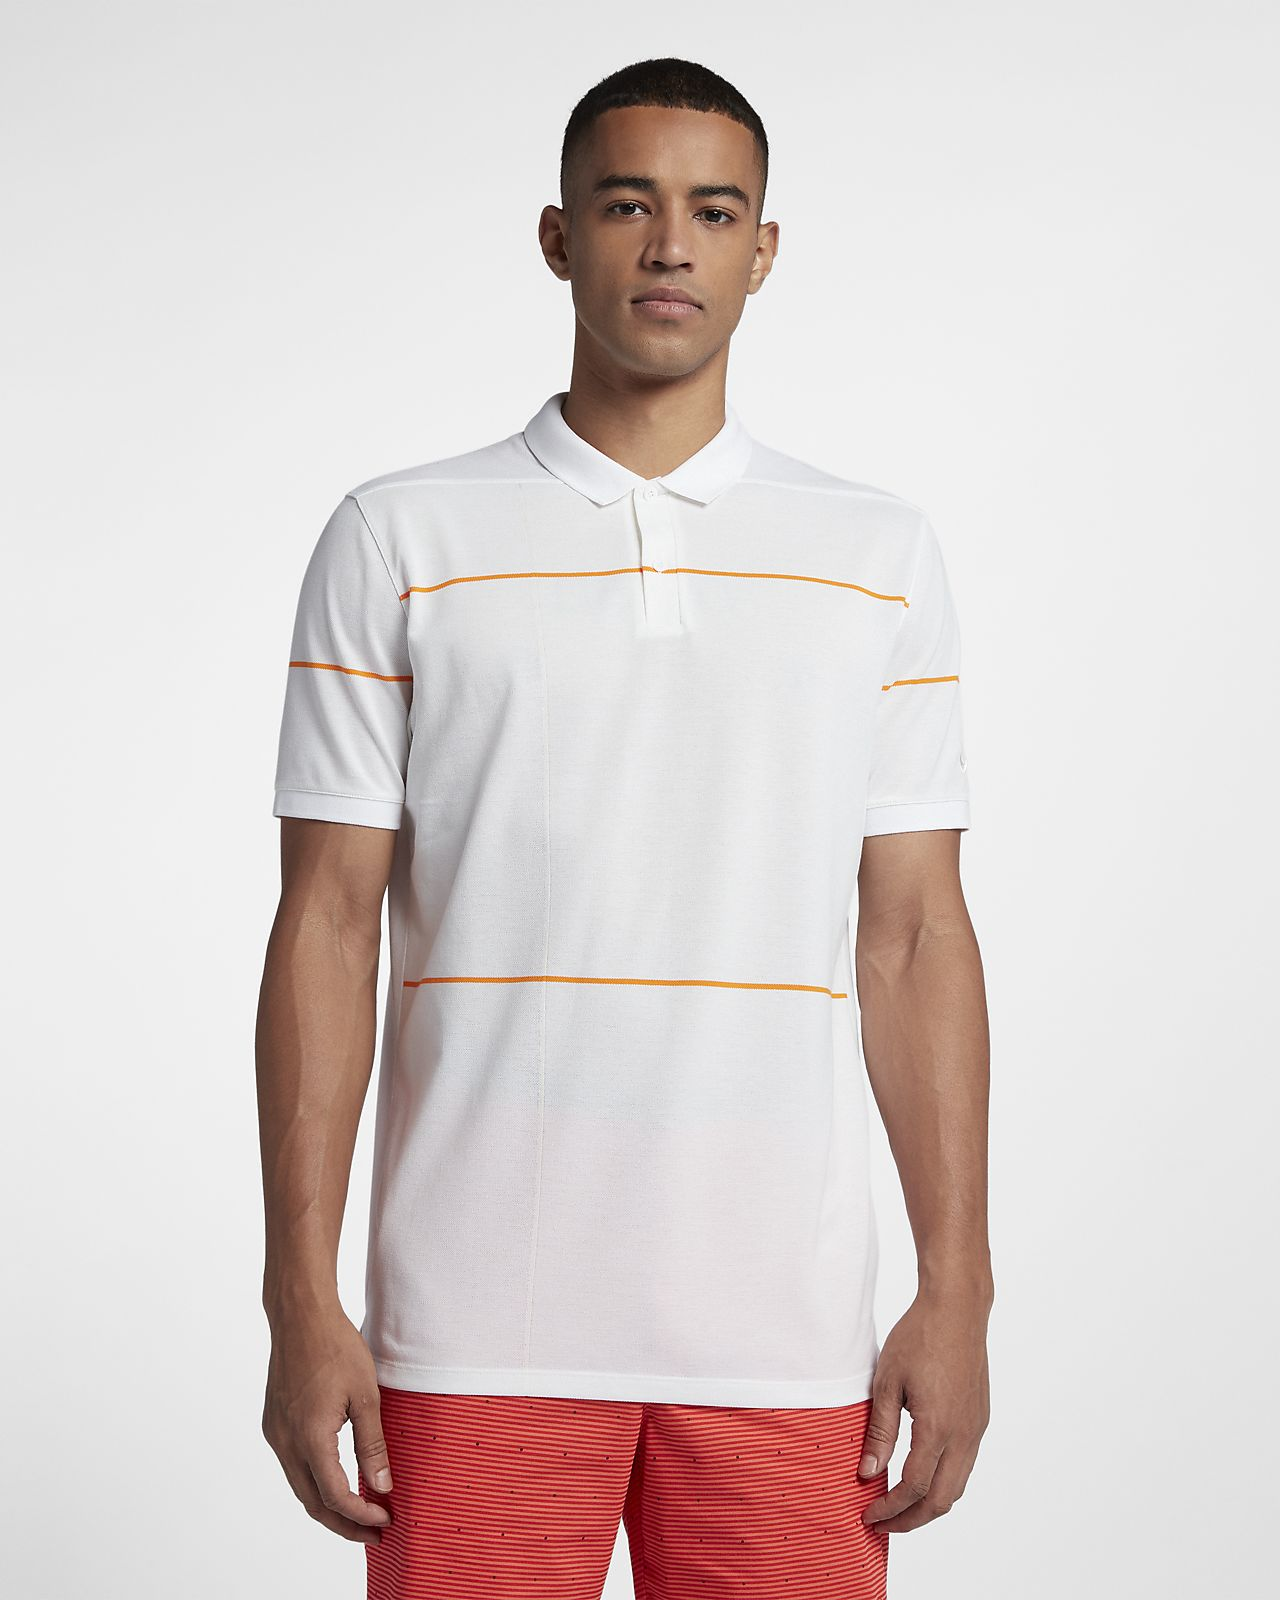 d698f7b3 Nike Golf Dri Fit Uv Tech Solid Polo Shirt - DREAMWORKS